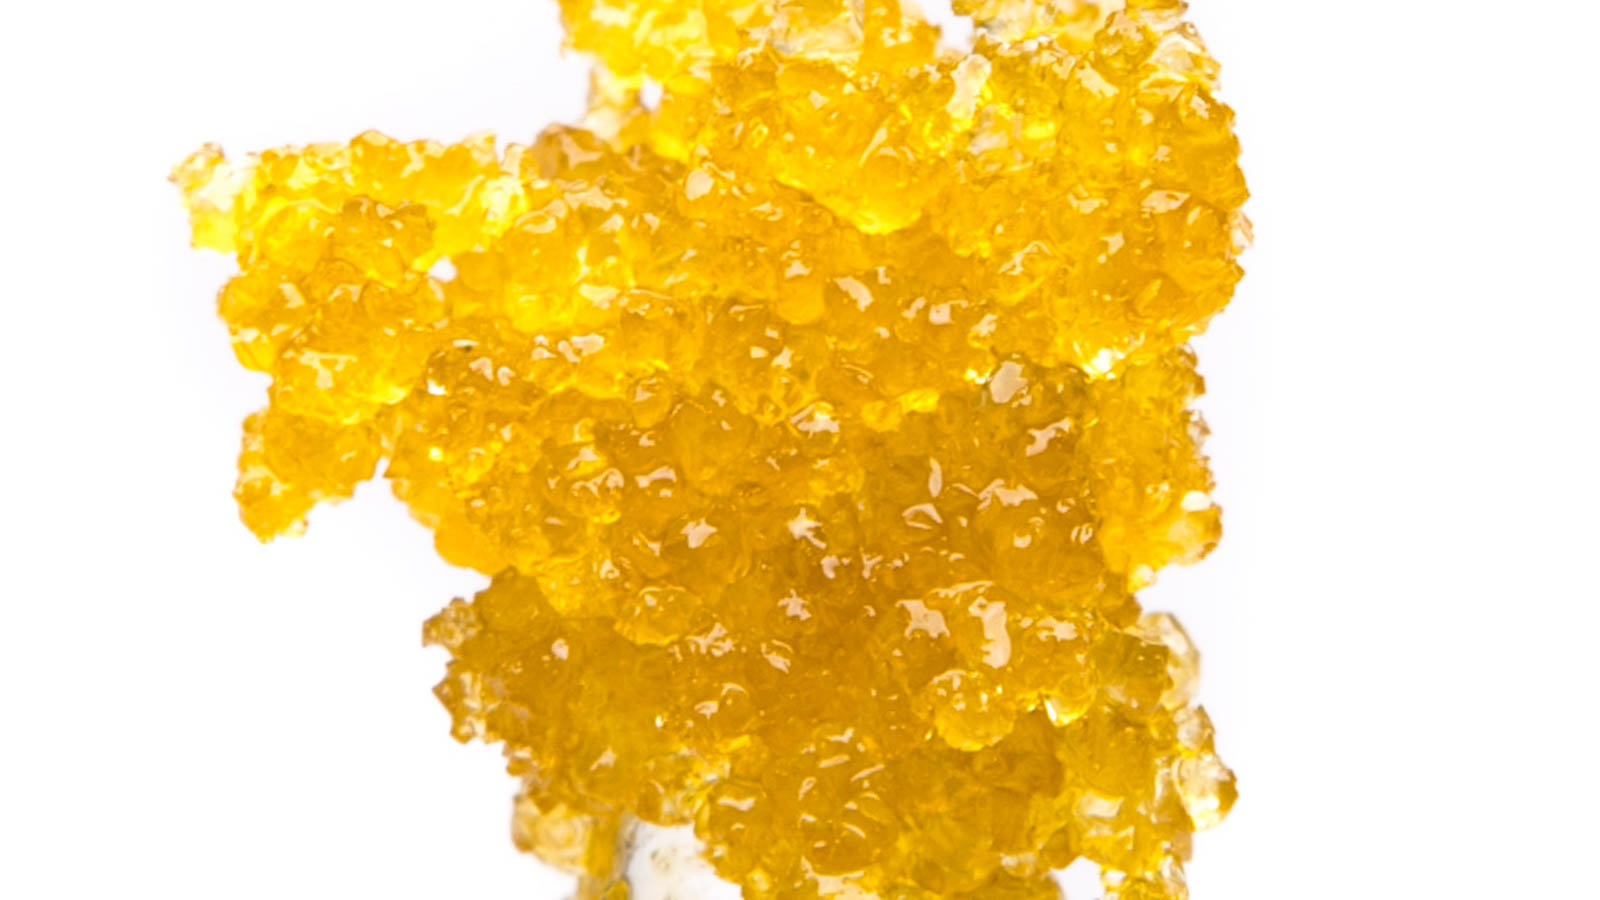 What Is Live Resin? Live Resin Definition   Weedmaps